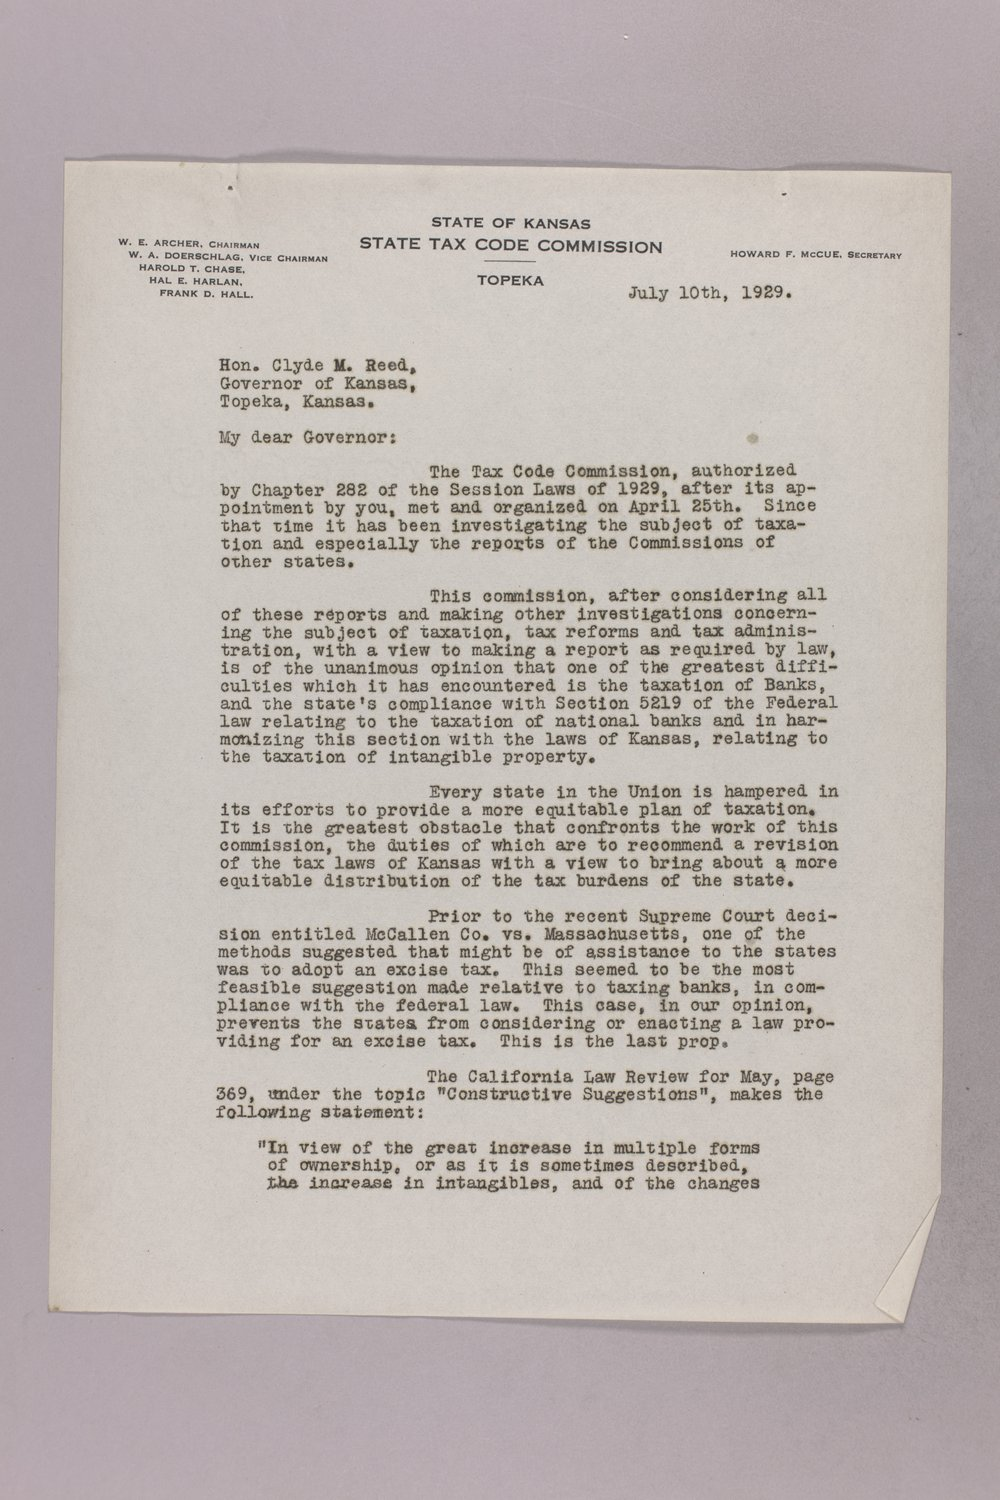 Governor Clyde M. Reed correspondence, Tax Code Commission - 4